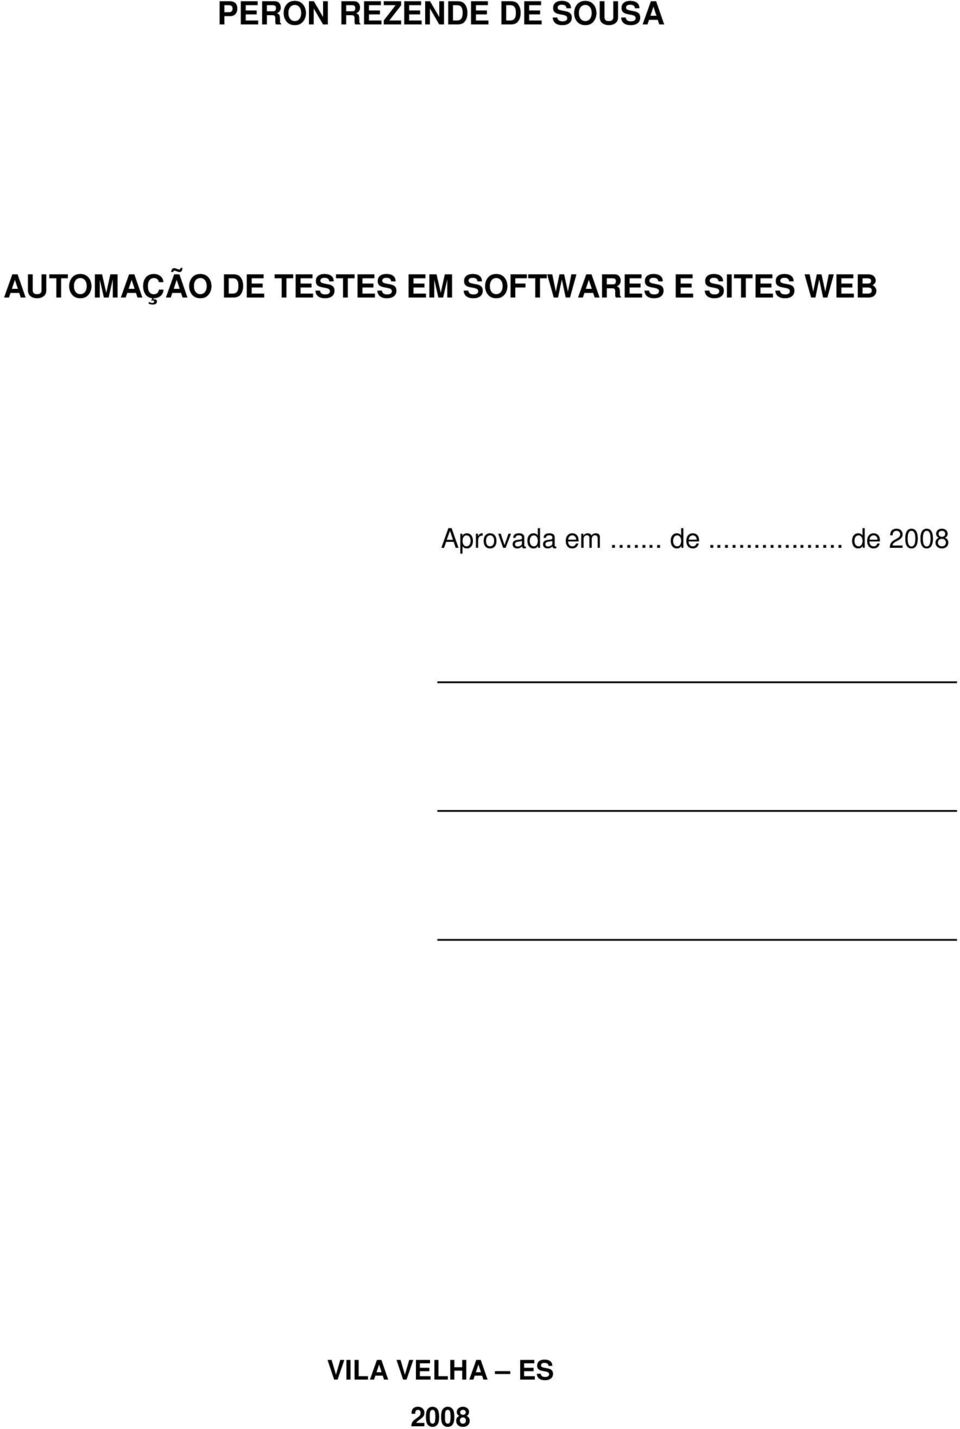 SOFTWARES E SITES WEB